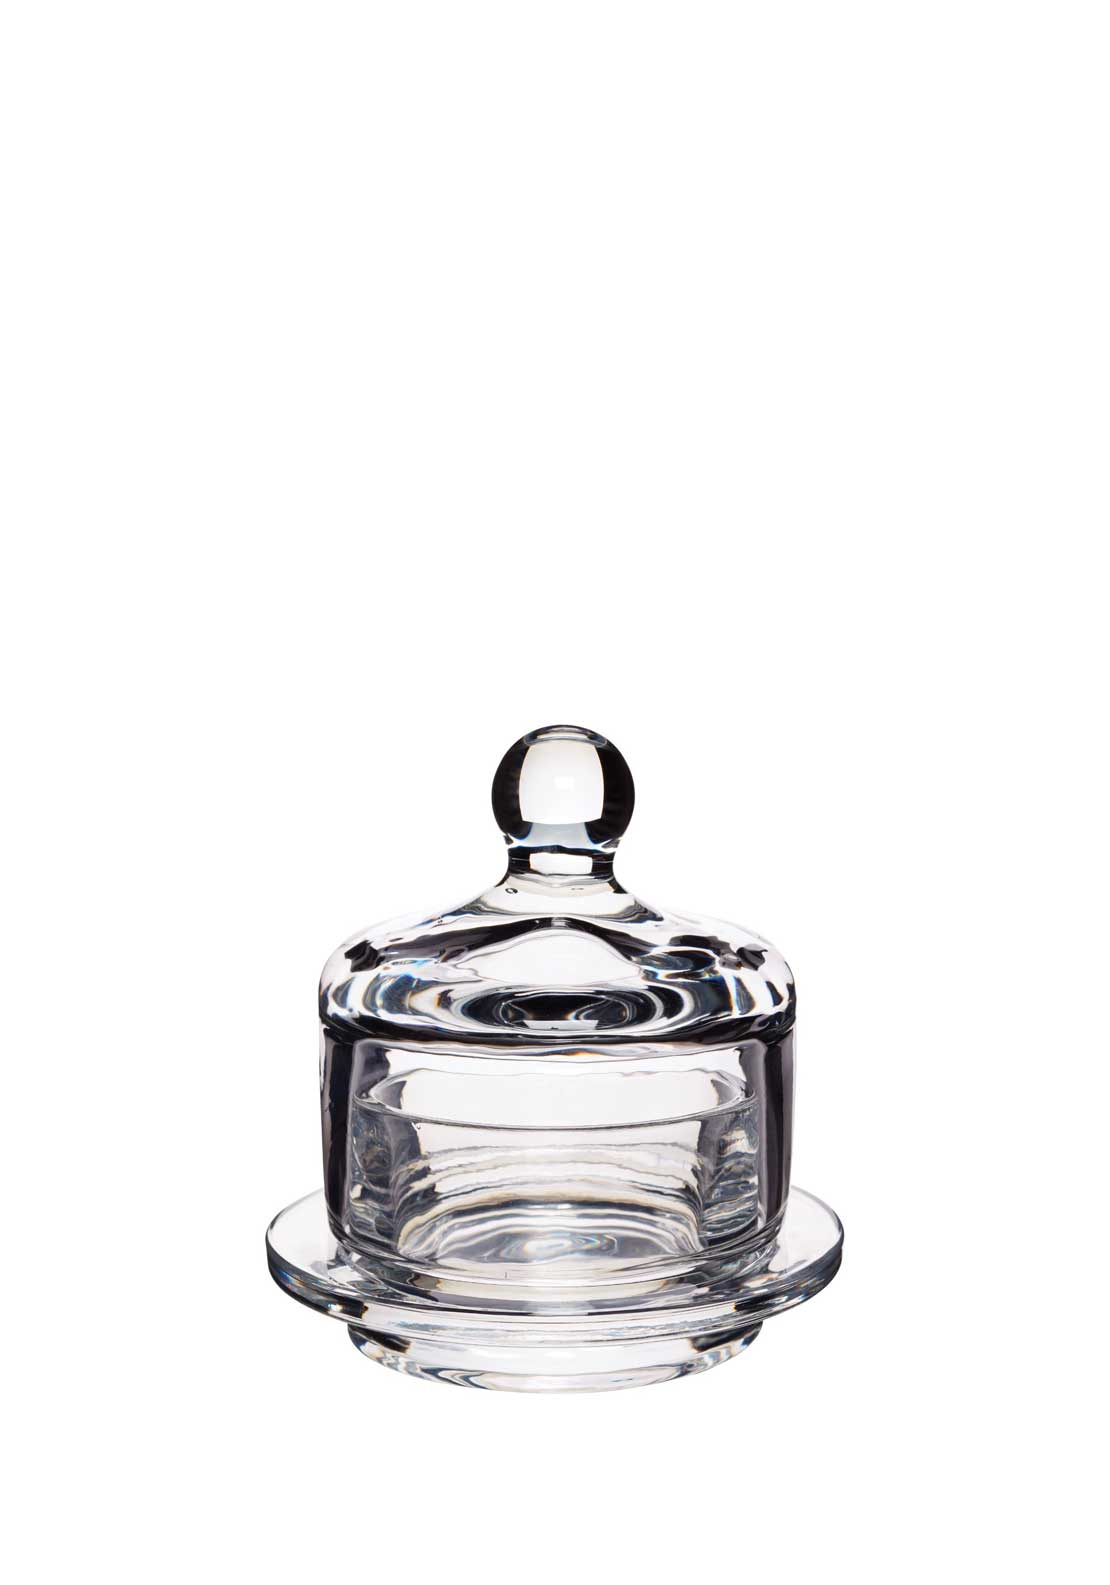 Kitchen Craft Masterclass Mini Glass Serving Cloche